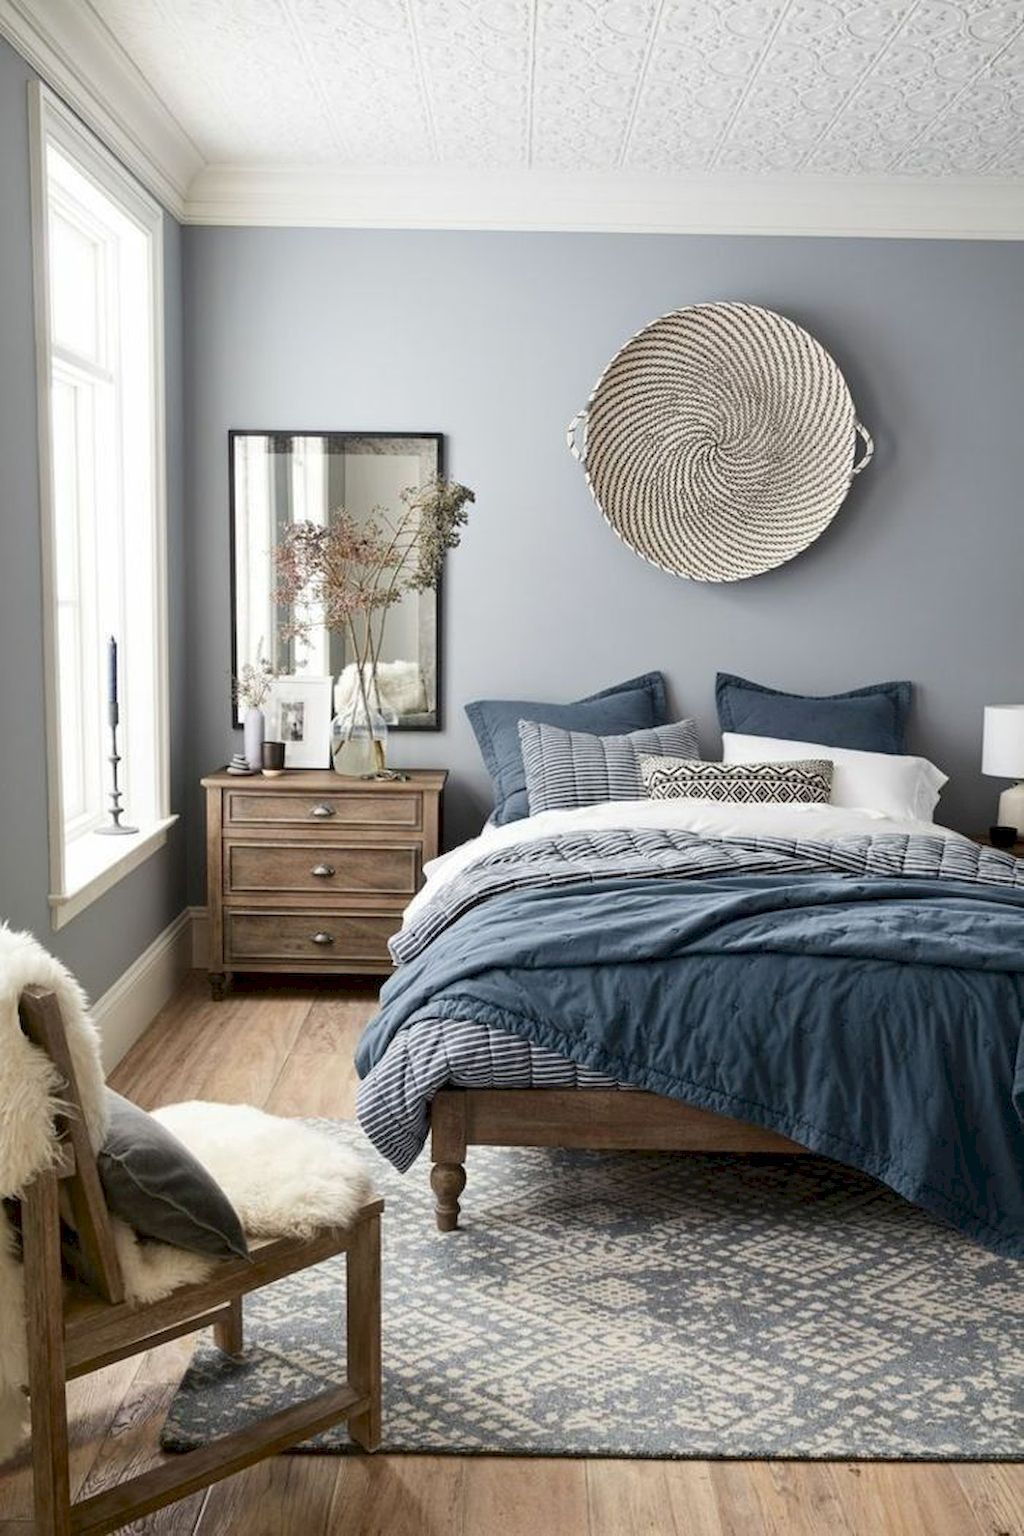 Chambre A Coucher Peinture Gris beautiful small bedroom decor ideas on a budget (minimalist